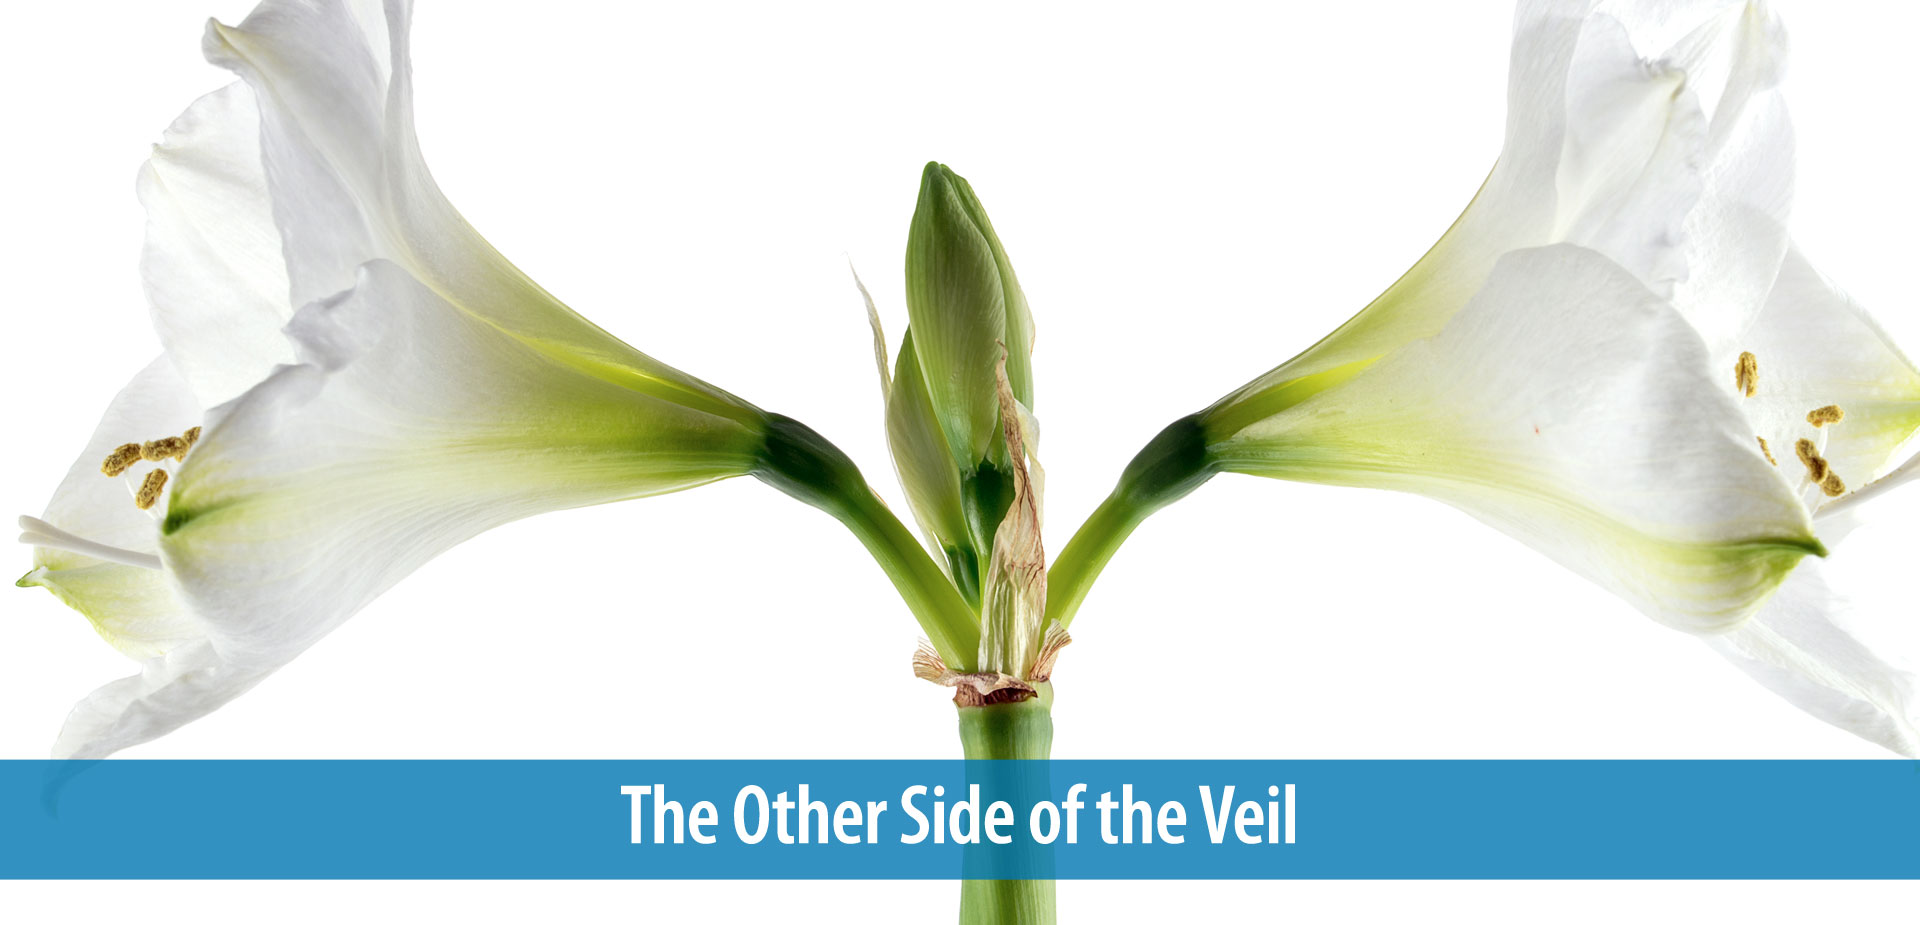 The Other Side of the Veil